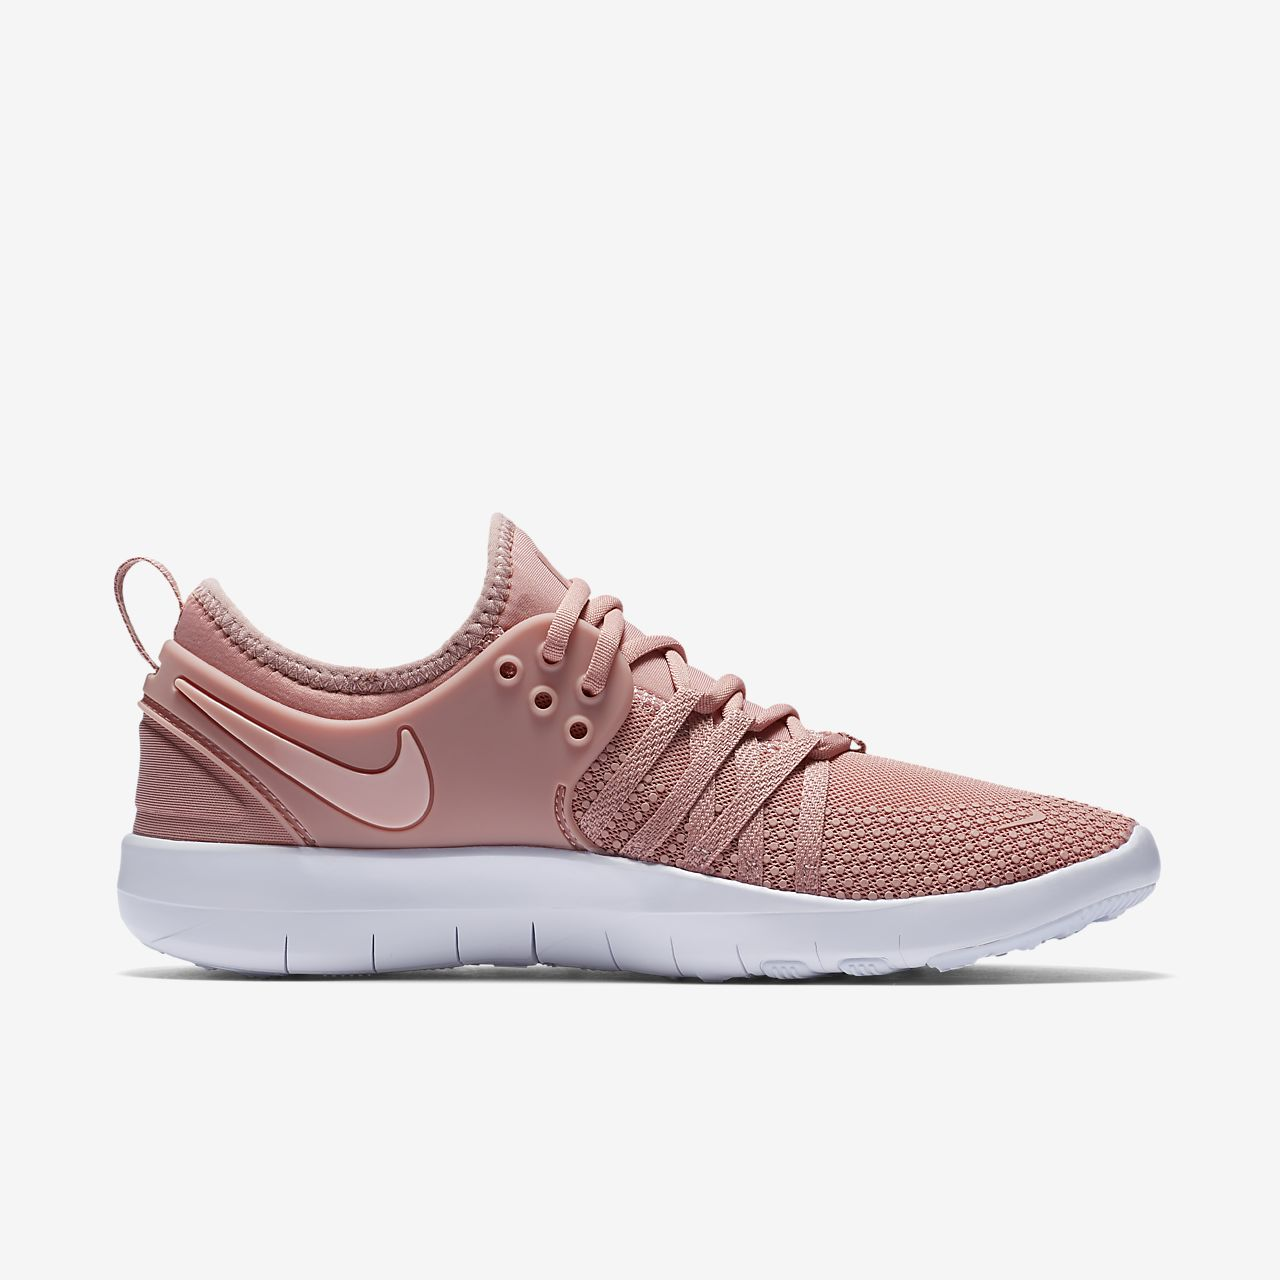 39de2464663c Nike Womens Shoes   Nike Sneakers Online at Best Prices ...